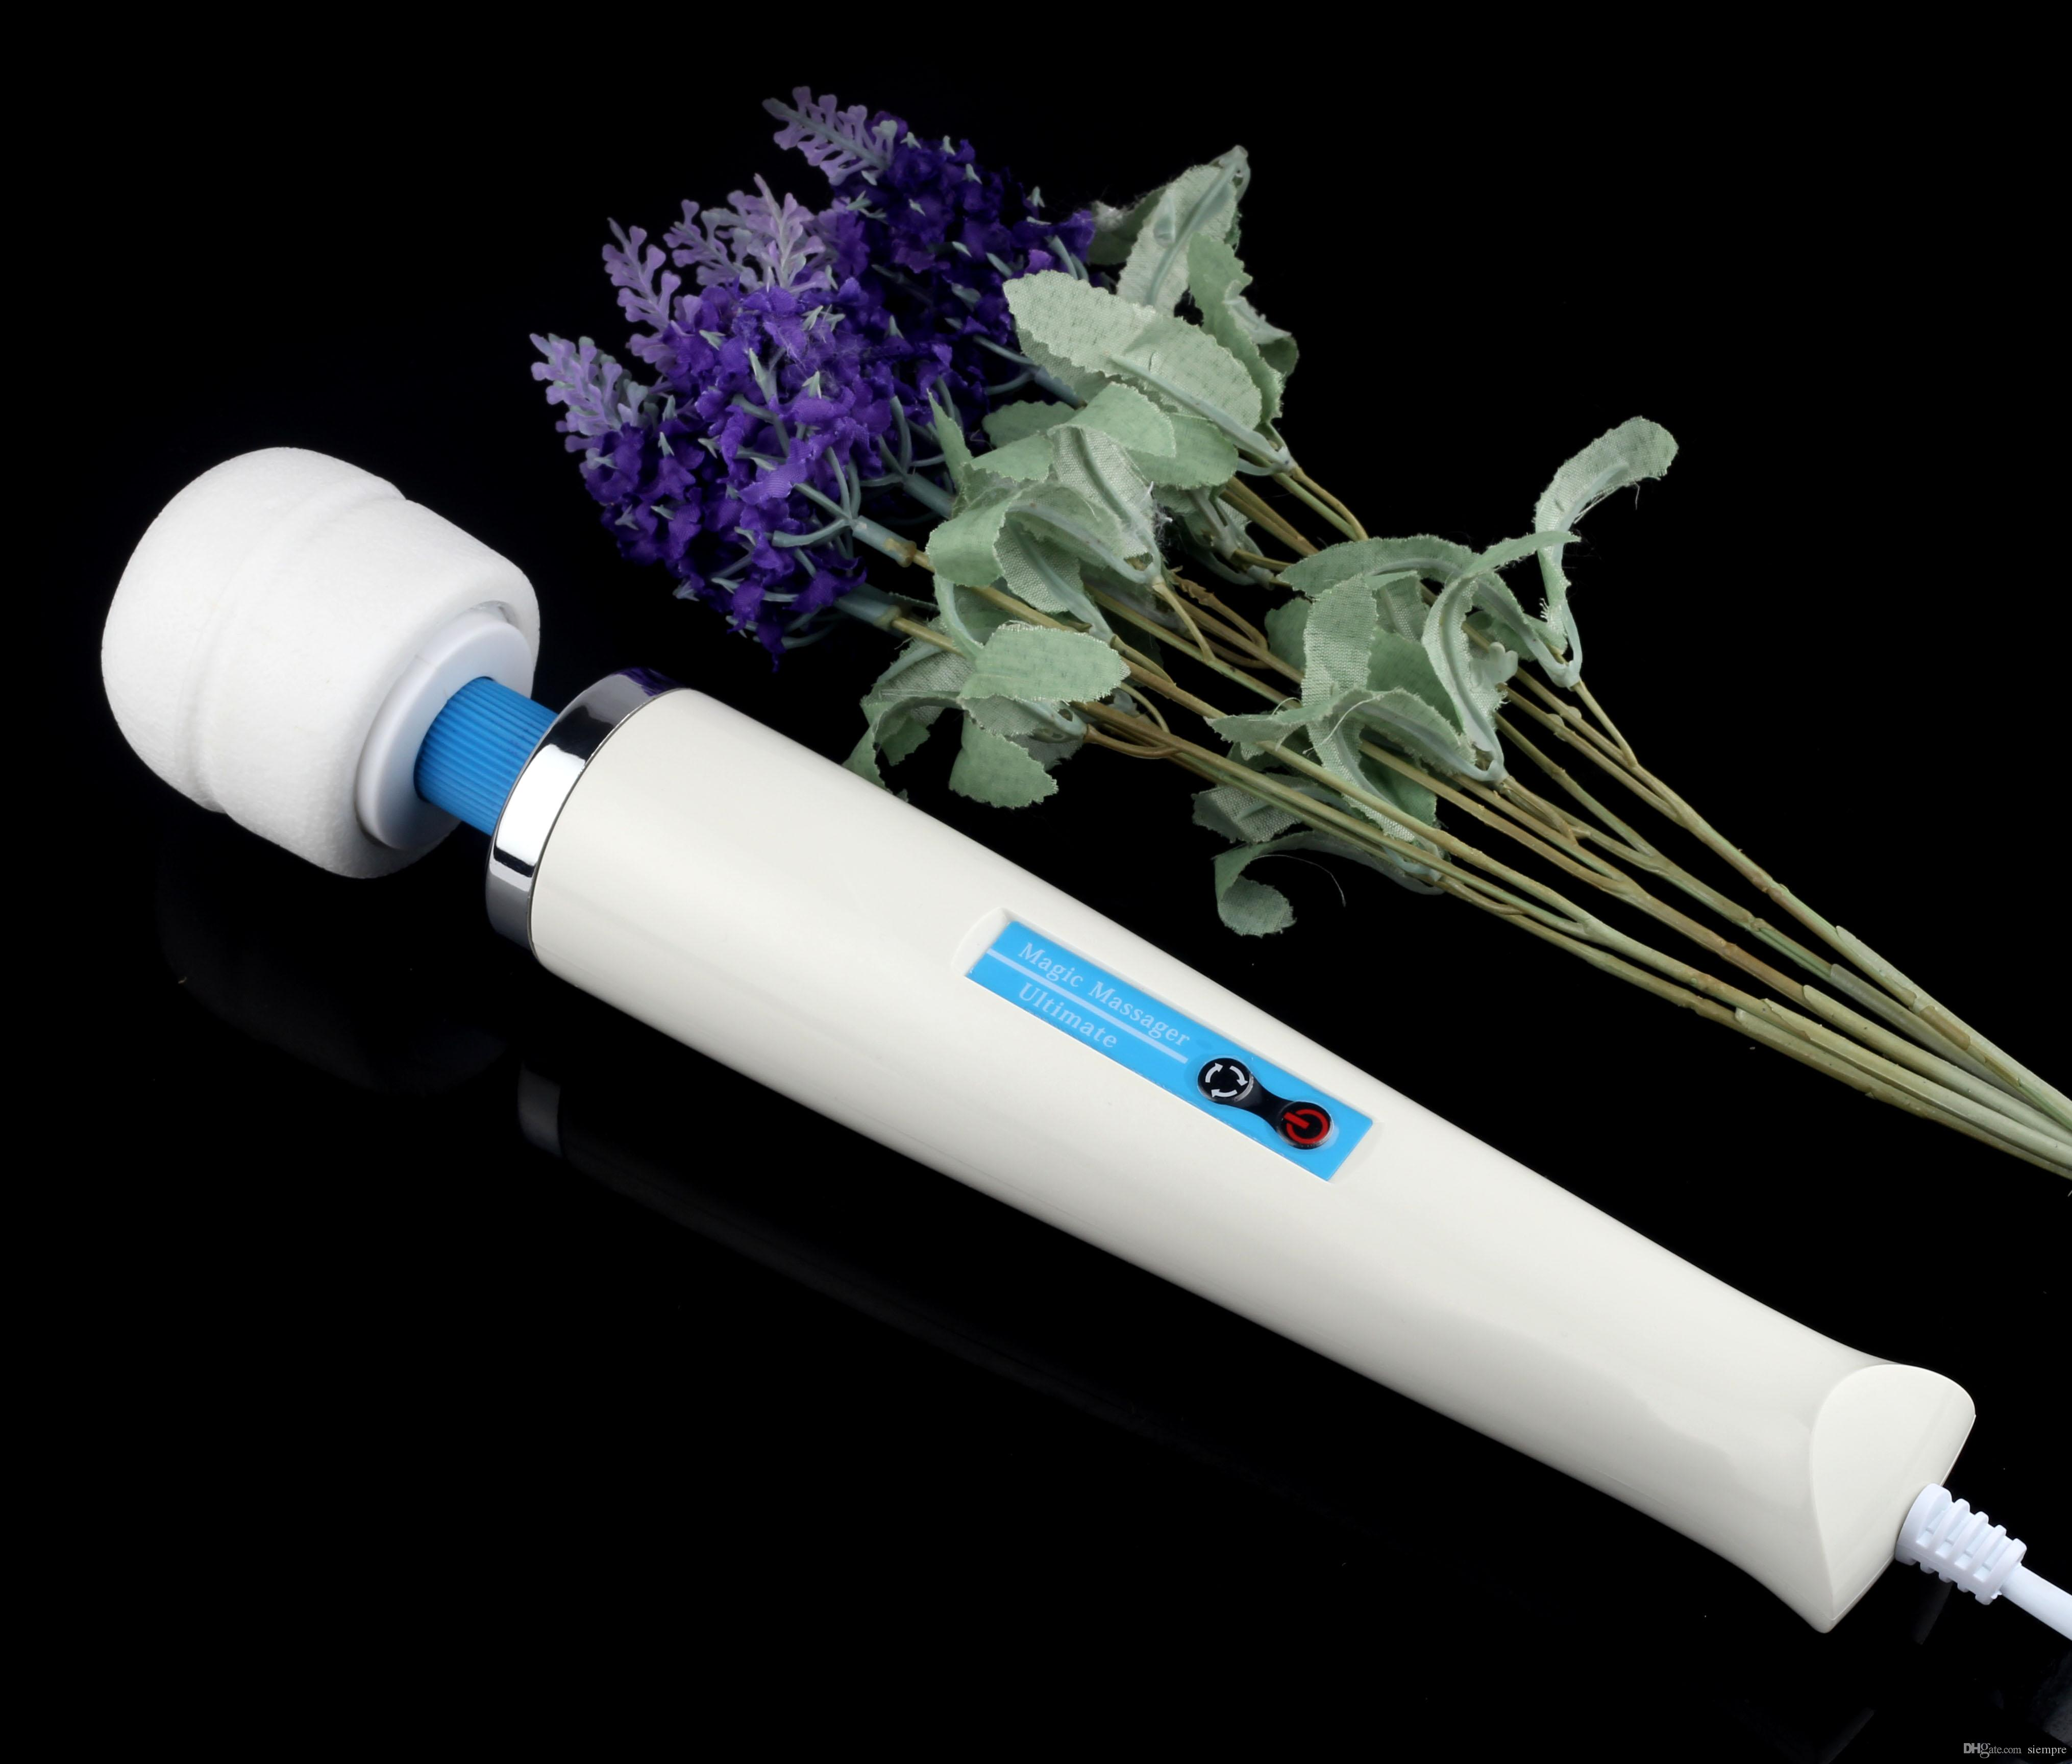 Magical vibrator 30 seconds to ecstasy